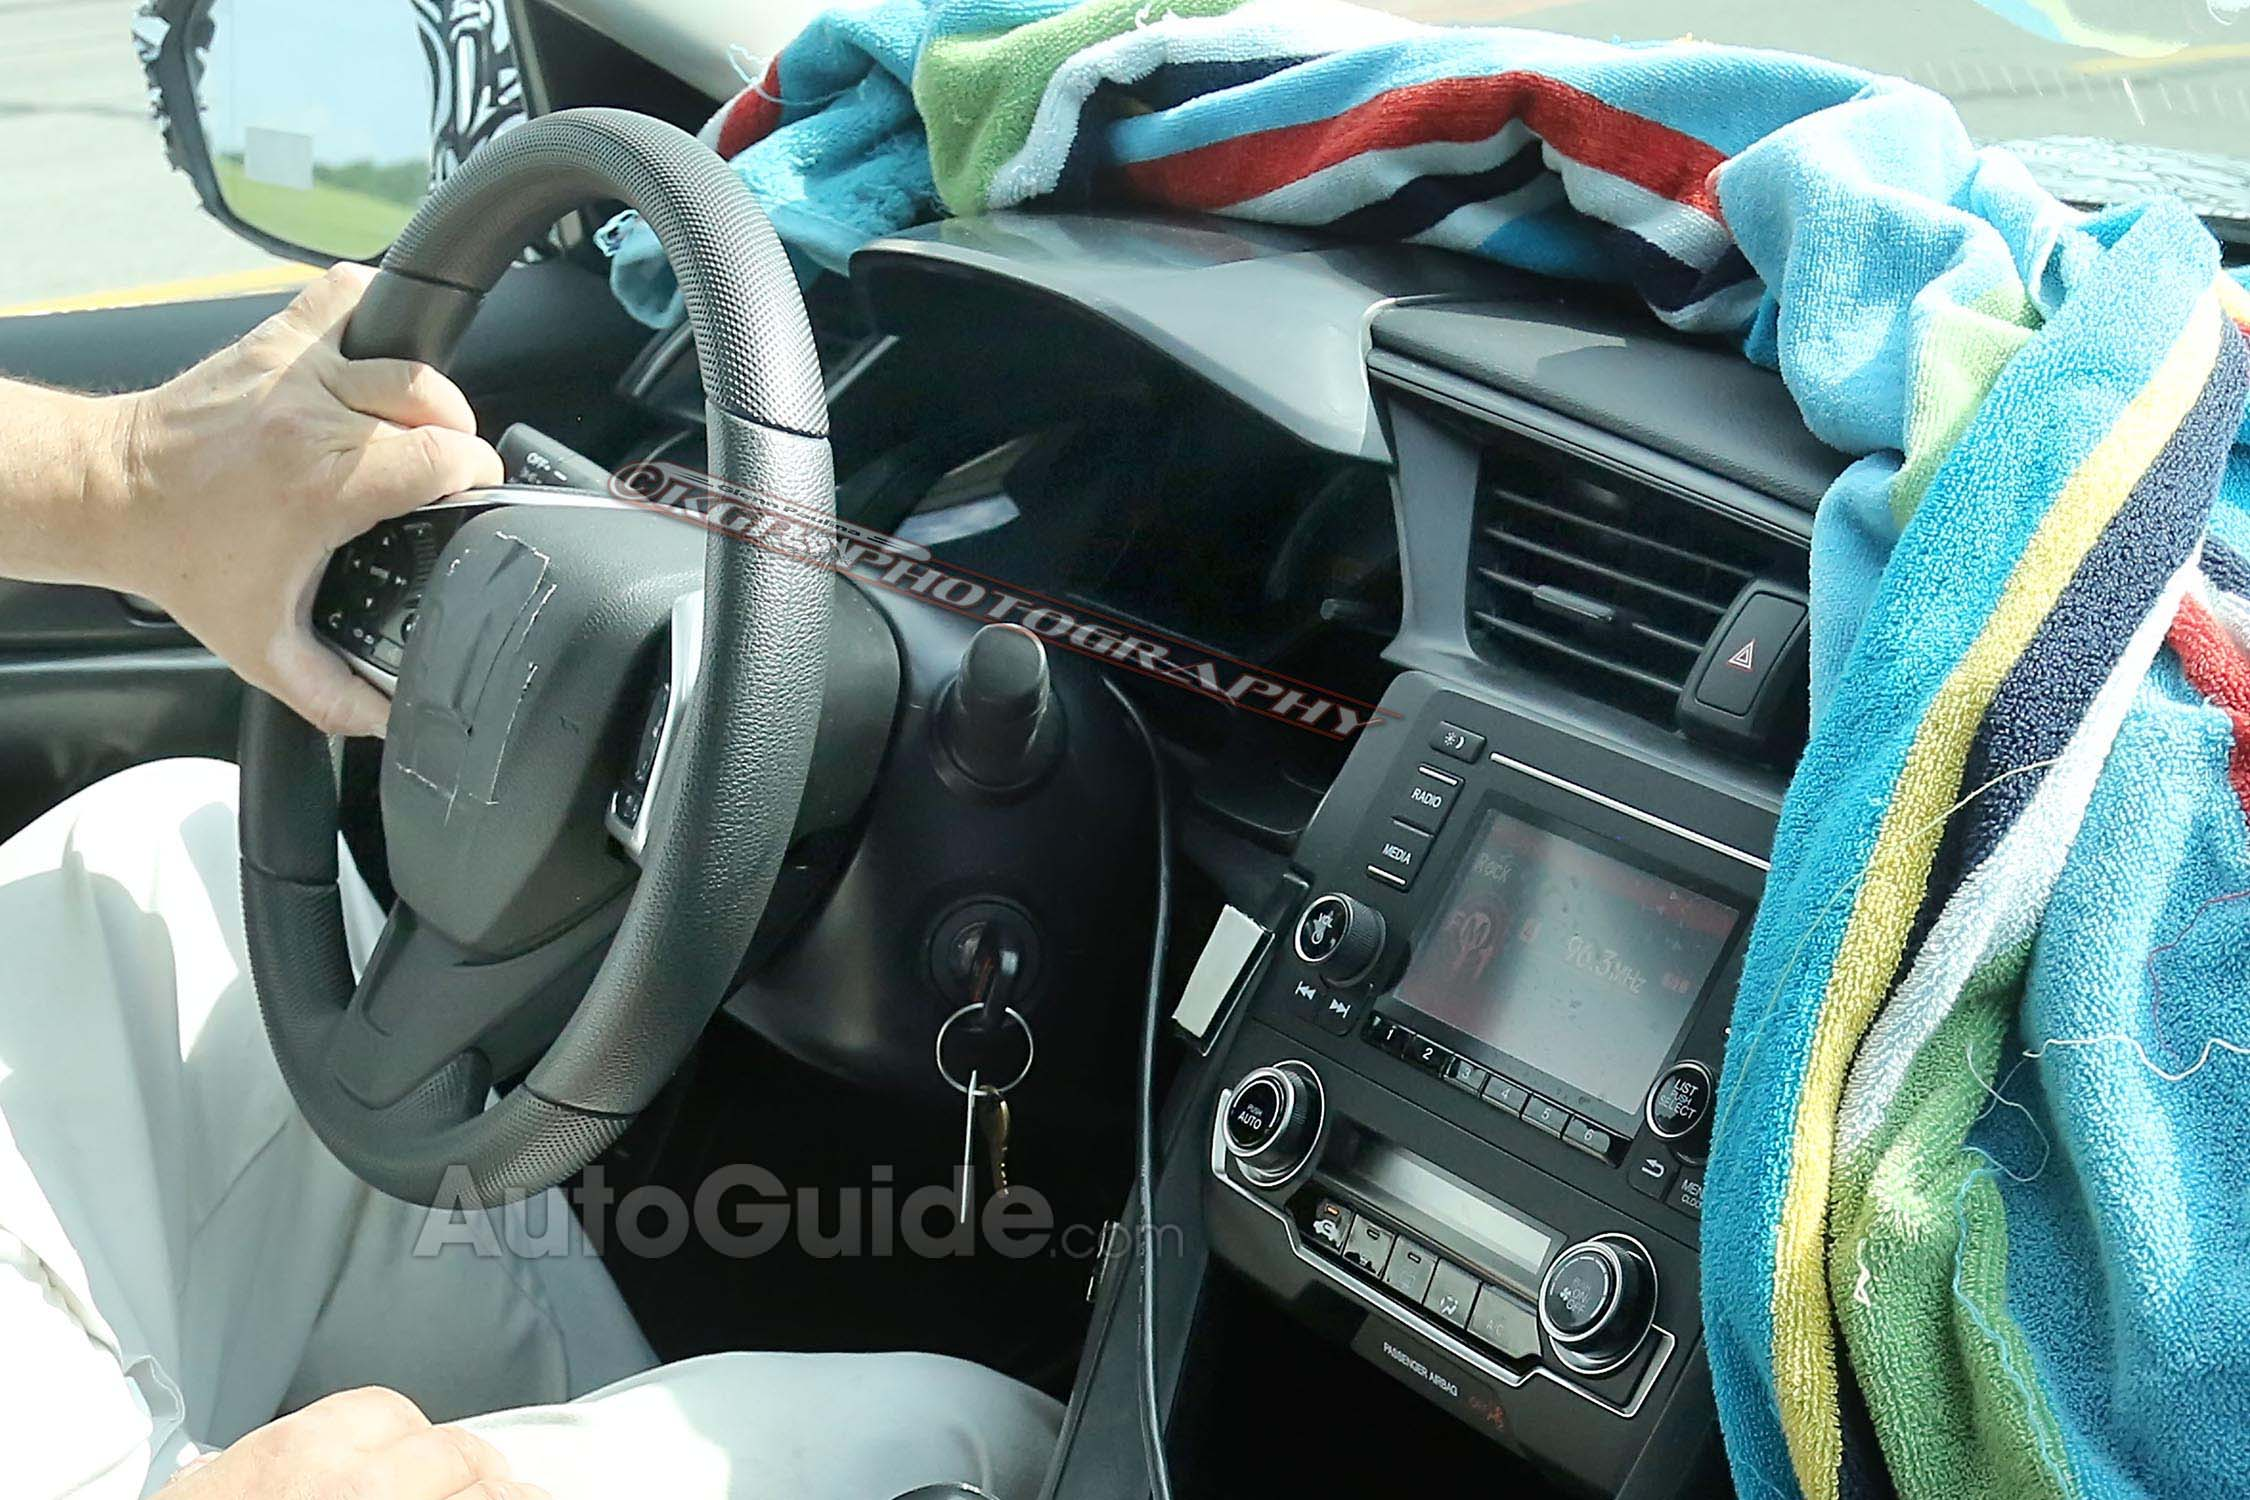 2016-Honda-Civic-Spy-Photo-Interior-2